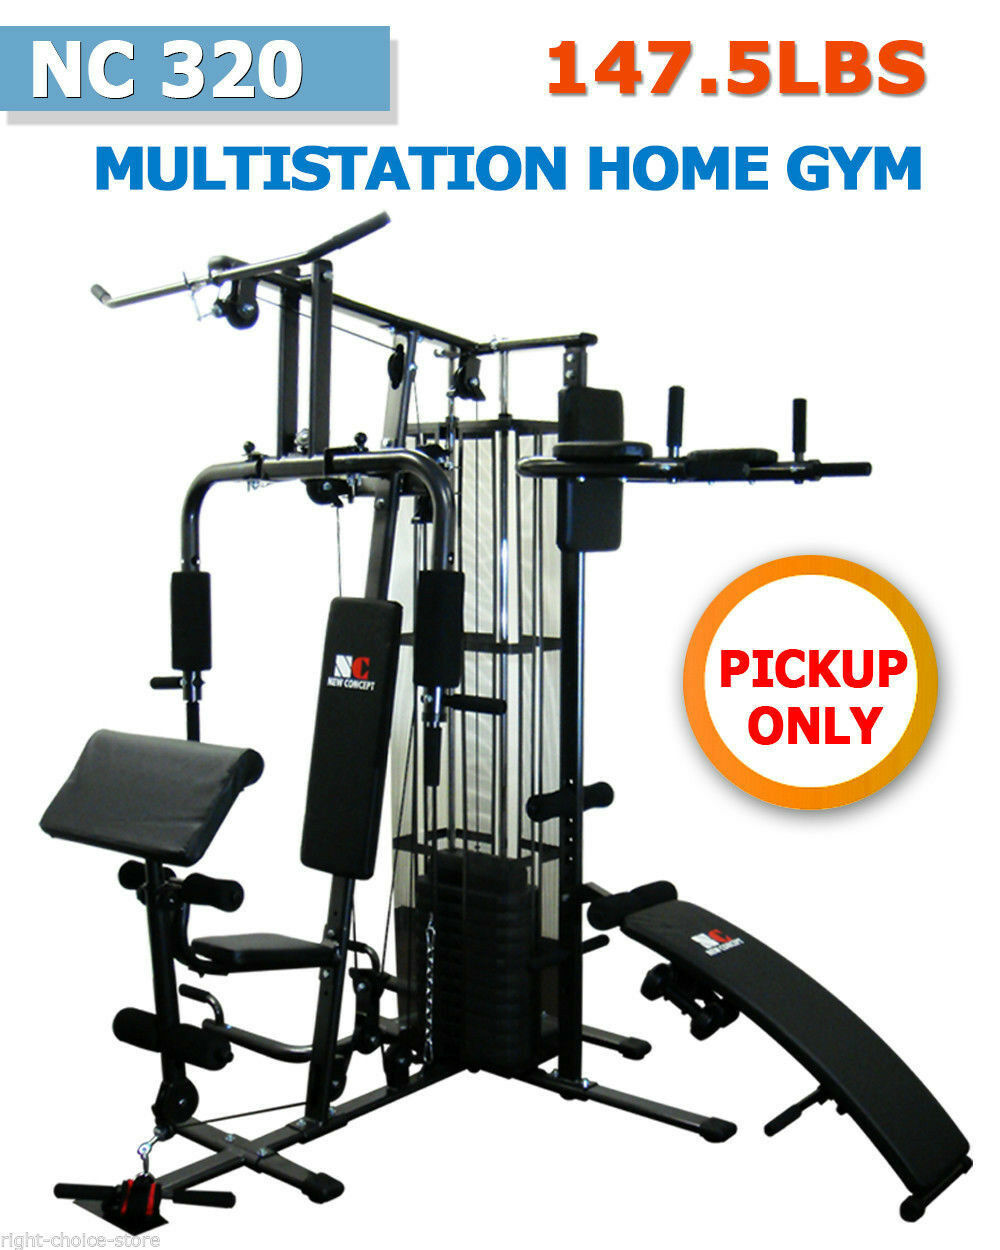 147 LBS NEW MULTI STATION HOME GYM FITNESS EQUIPMENT Bench